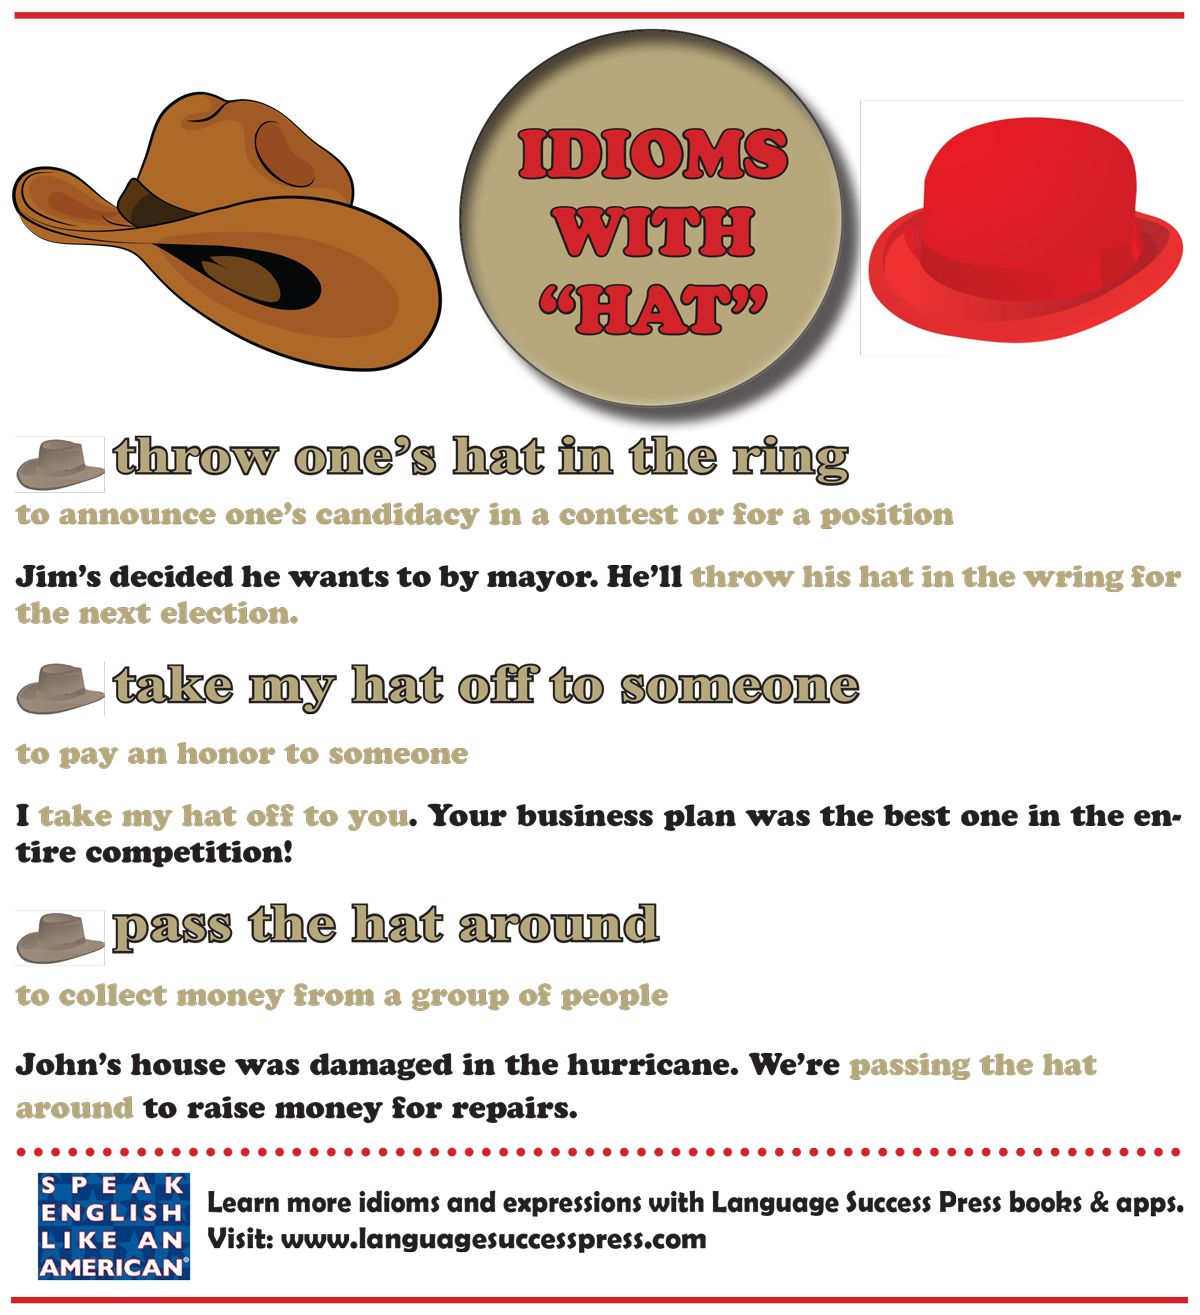 Enjoy These Idioms With Hat